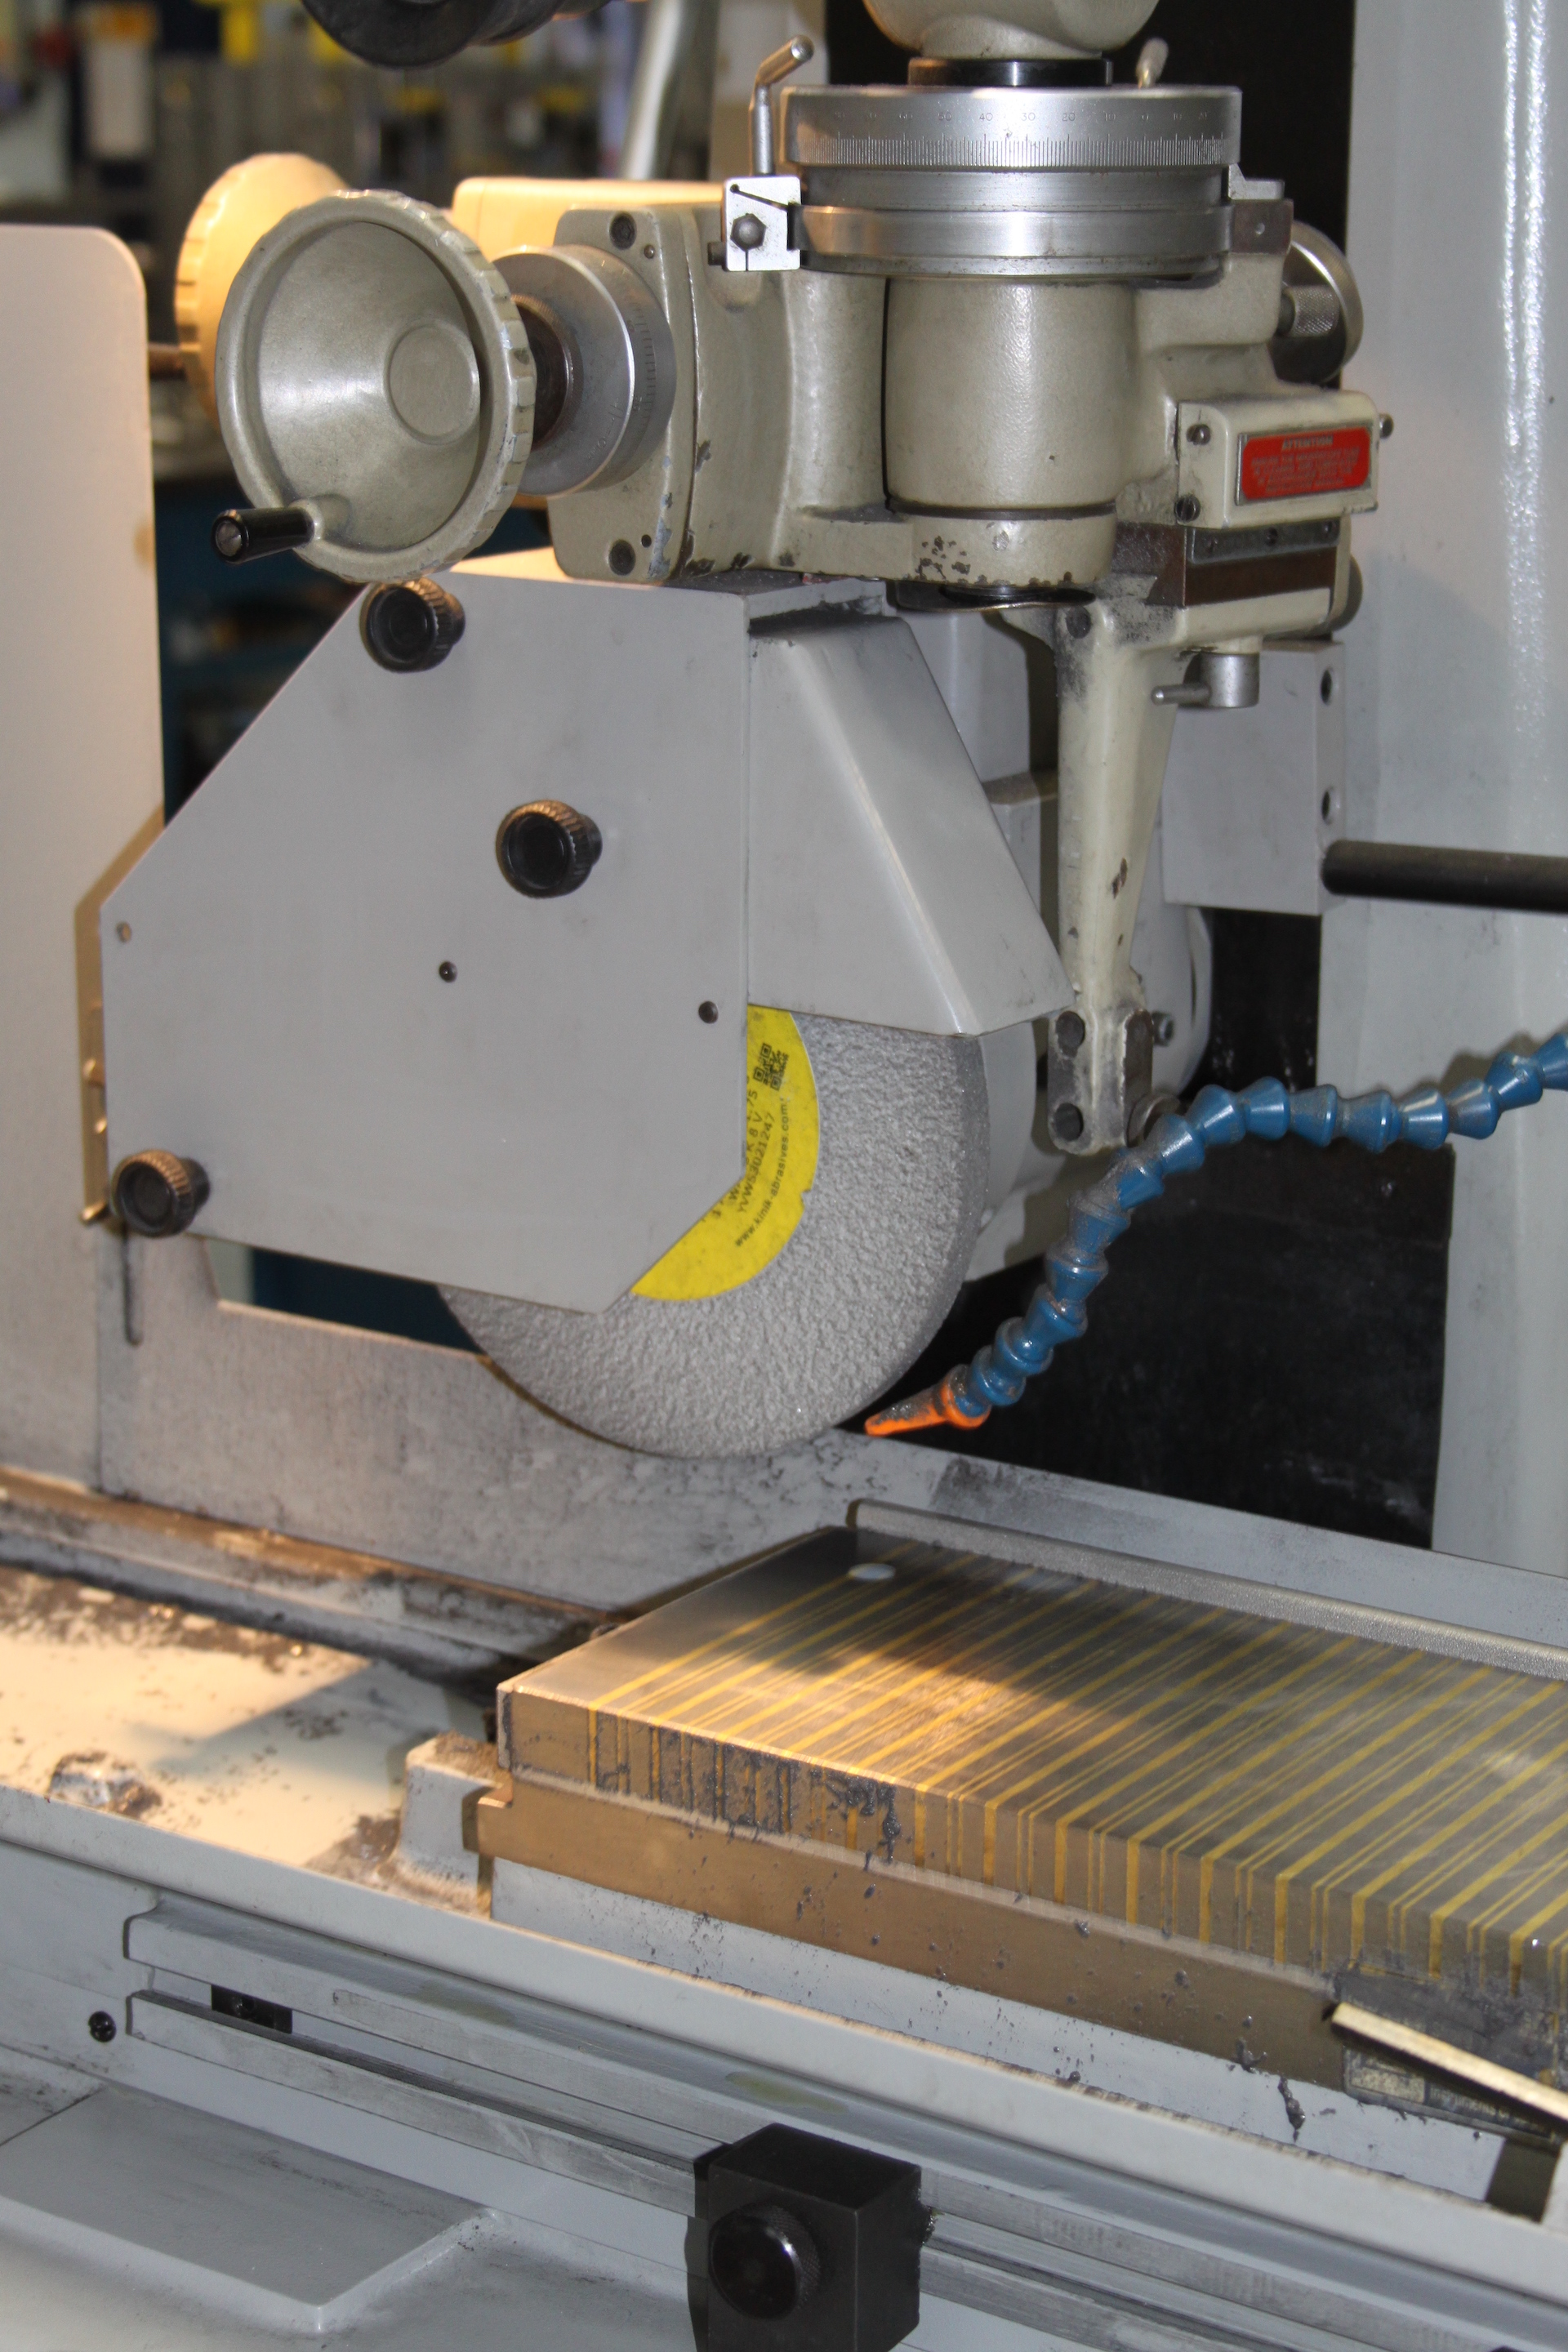 https://www.metalite.co.uk/wp-content/uploads/capabilities/surface-grinding/sub-of-618-optidress-on-surface-grinder.jpg